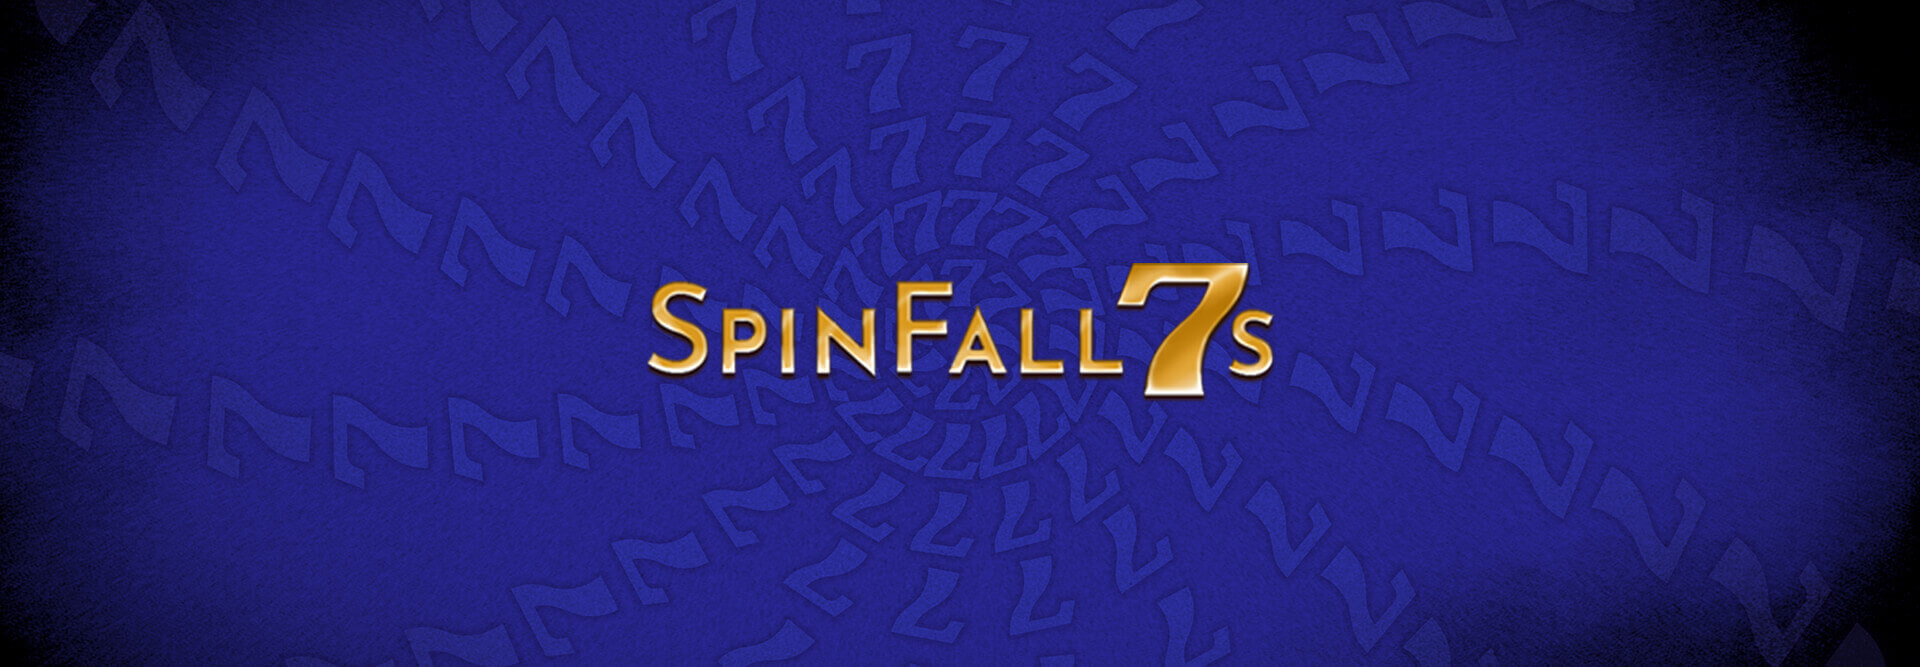 NEW GAME ALERT: SpinFall 7s is ready to shake and stir things up on mFortune!